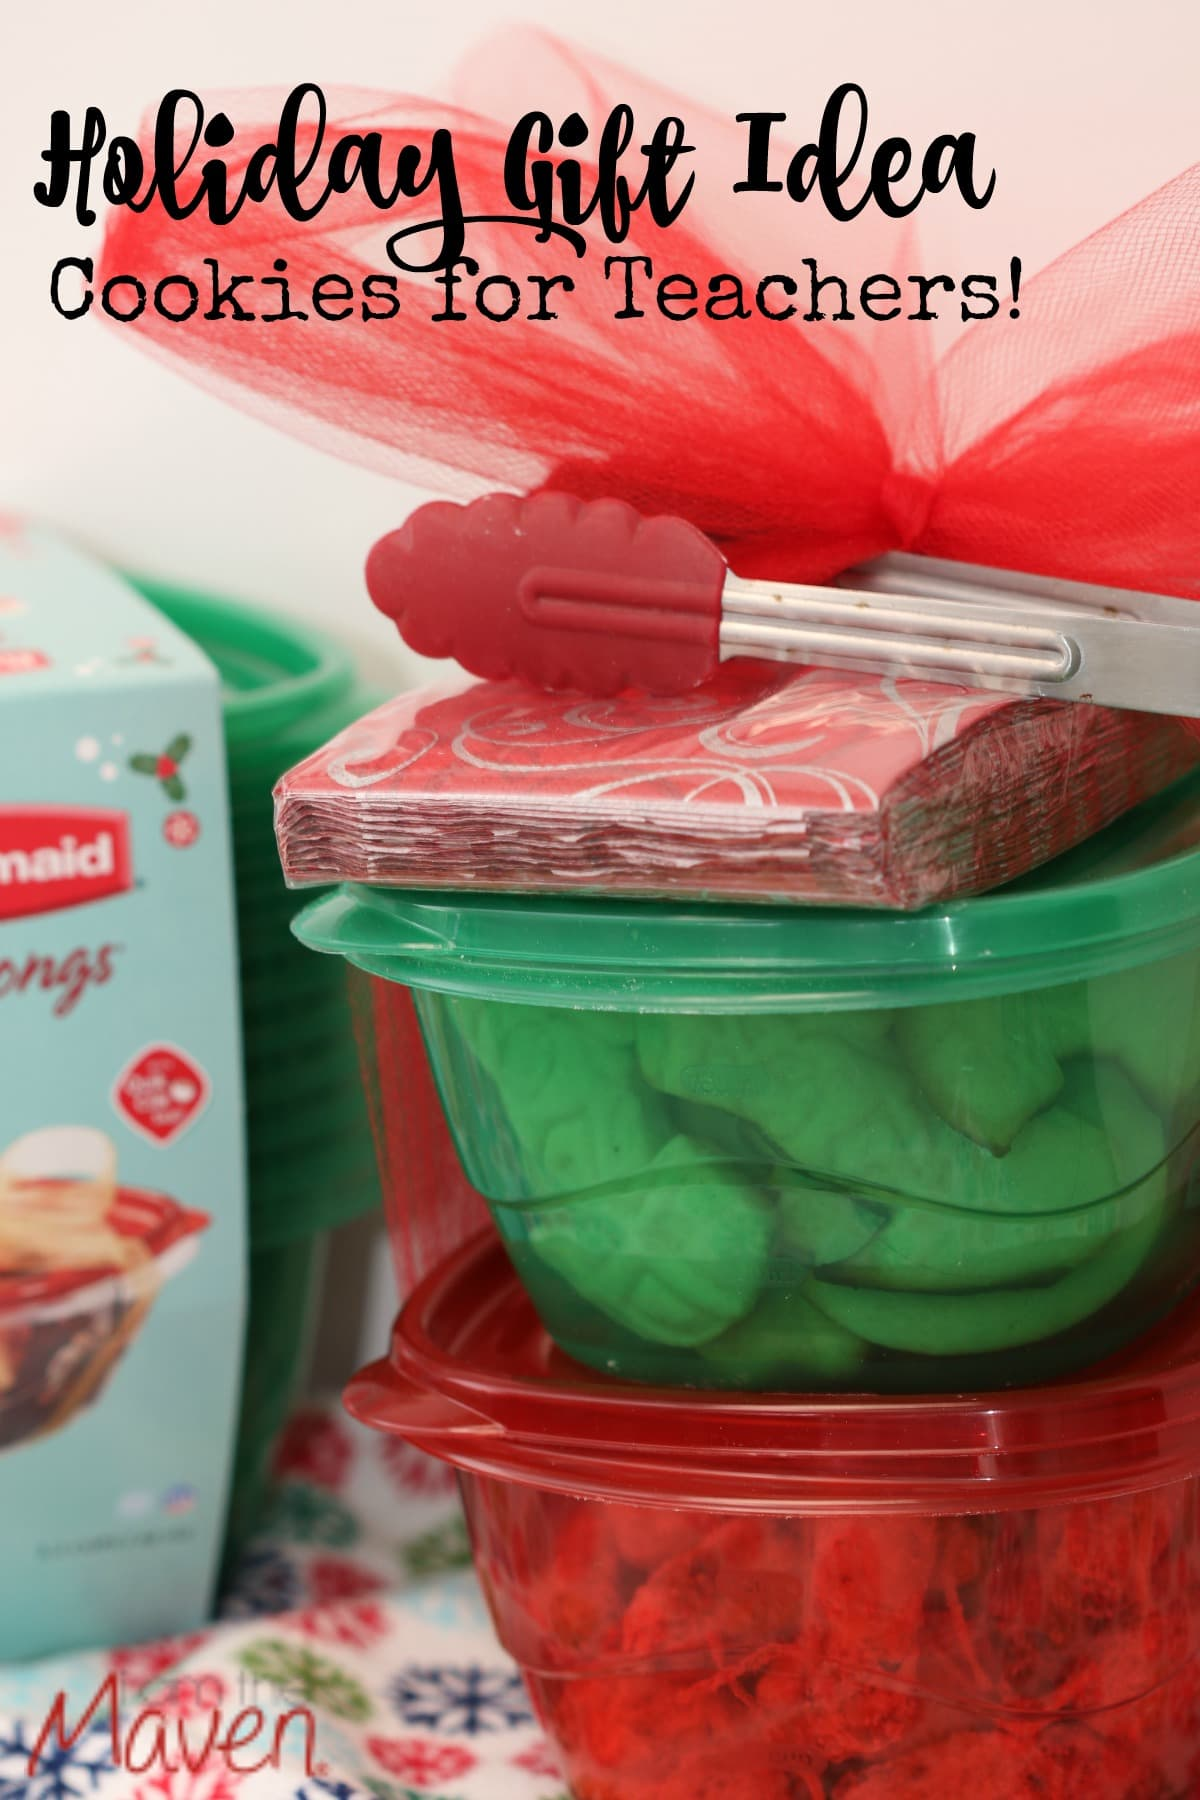 Make cookies for teachers and then put them in Rubbermaid TakeAlongs to keep them fresh and make them easy to transport! #SharetheHoliday AD